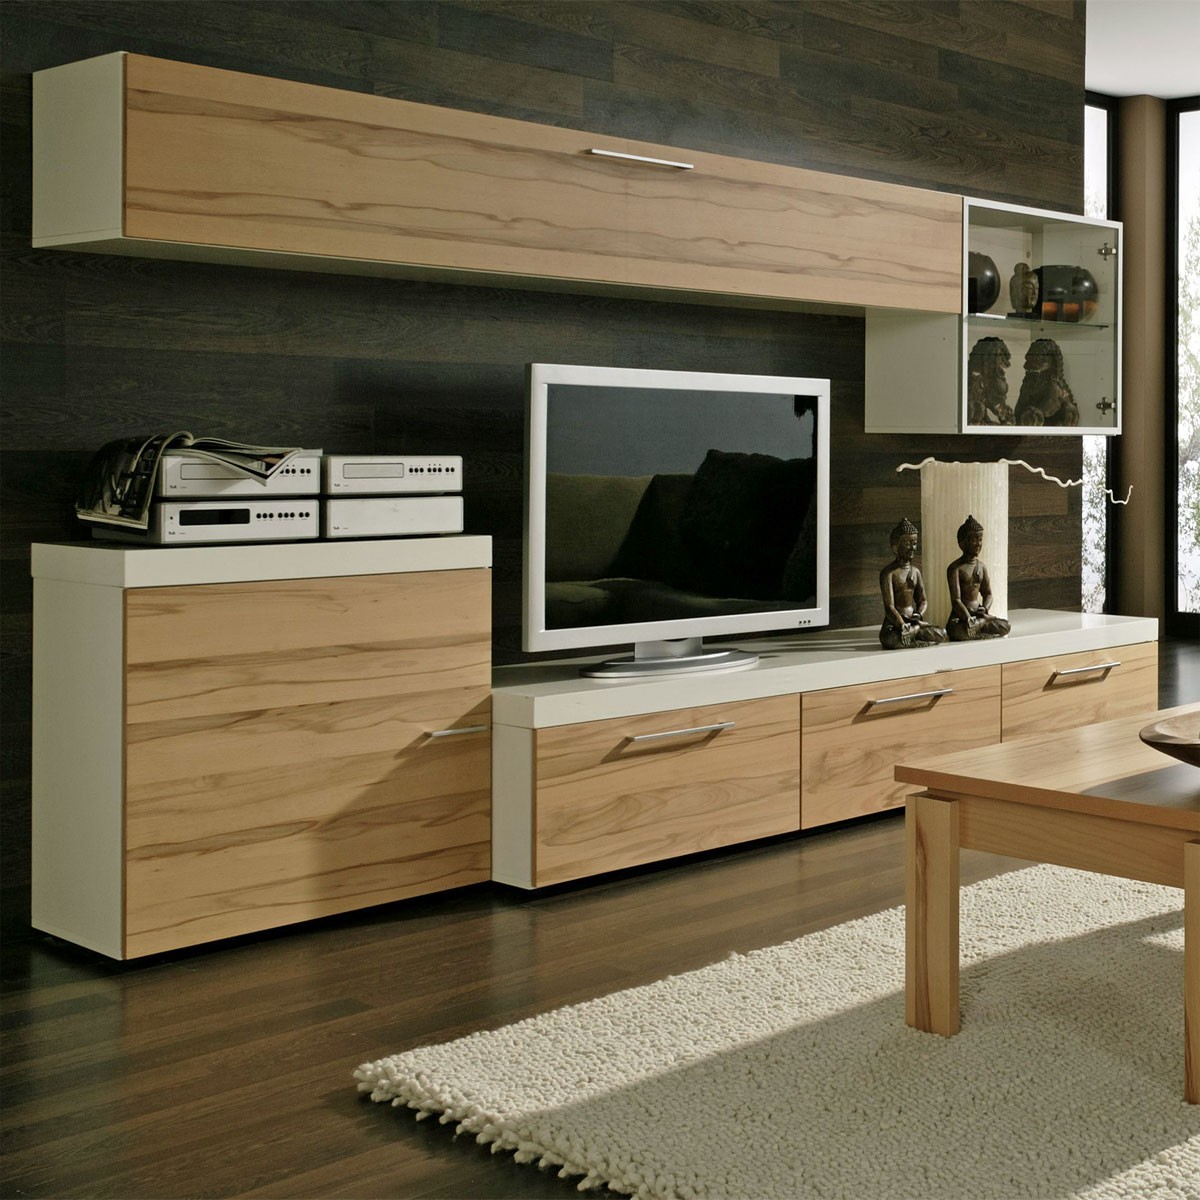 schrankwand wohnzimmer modern. Black Bedroom Furniture Sets. Home Design Ideas